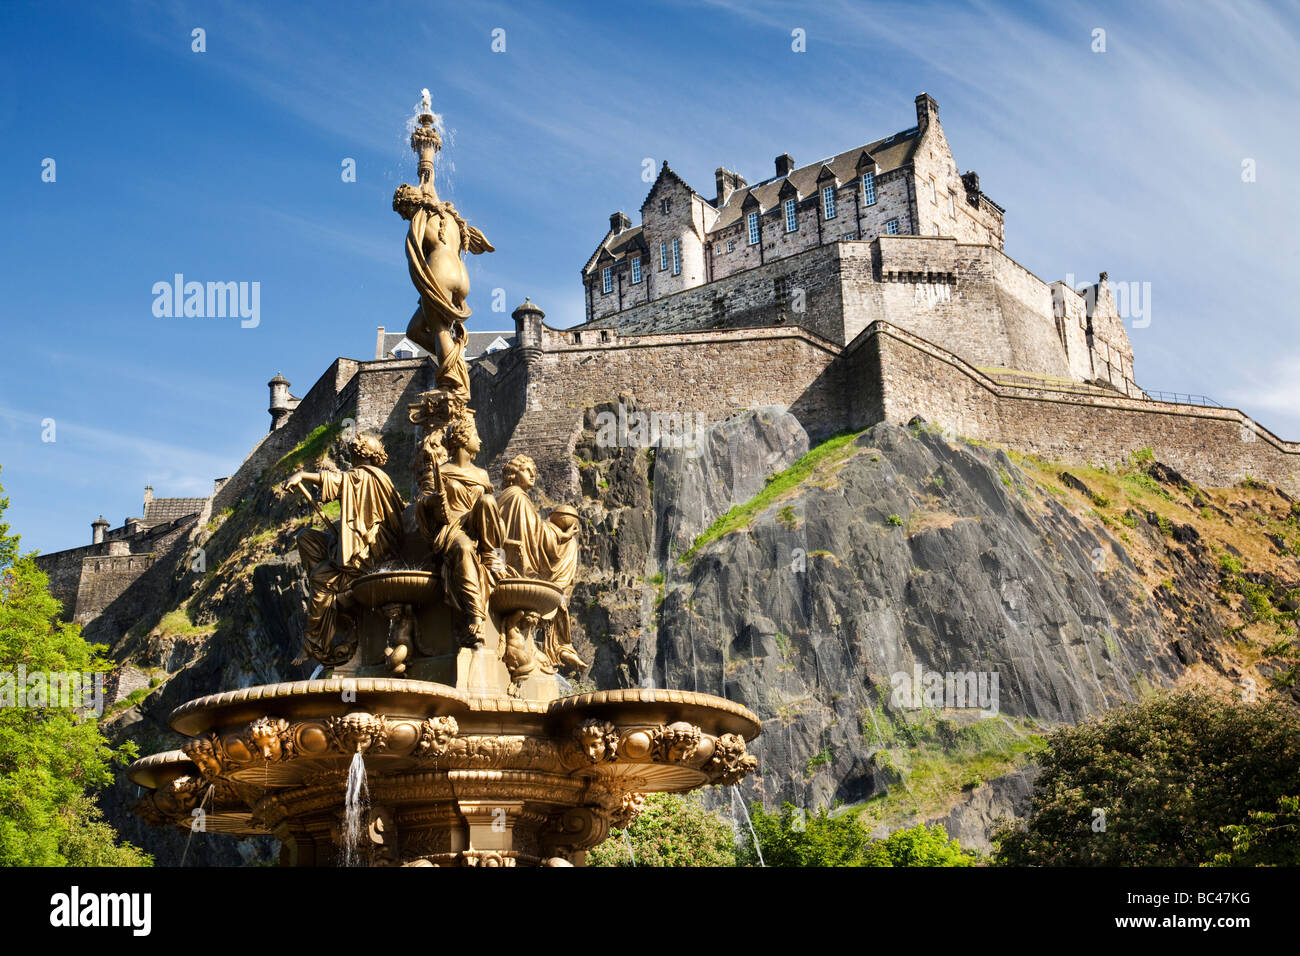 Edinburgh Castle And Ross Fountain Scotland Stock Photo Royalty Free Image 24680084 Alamy